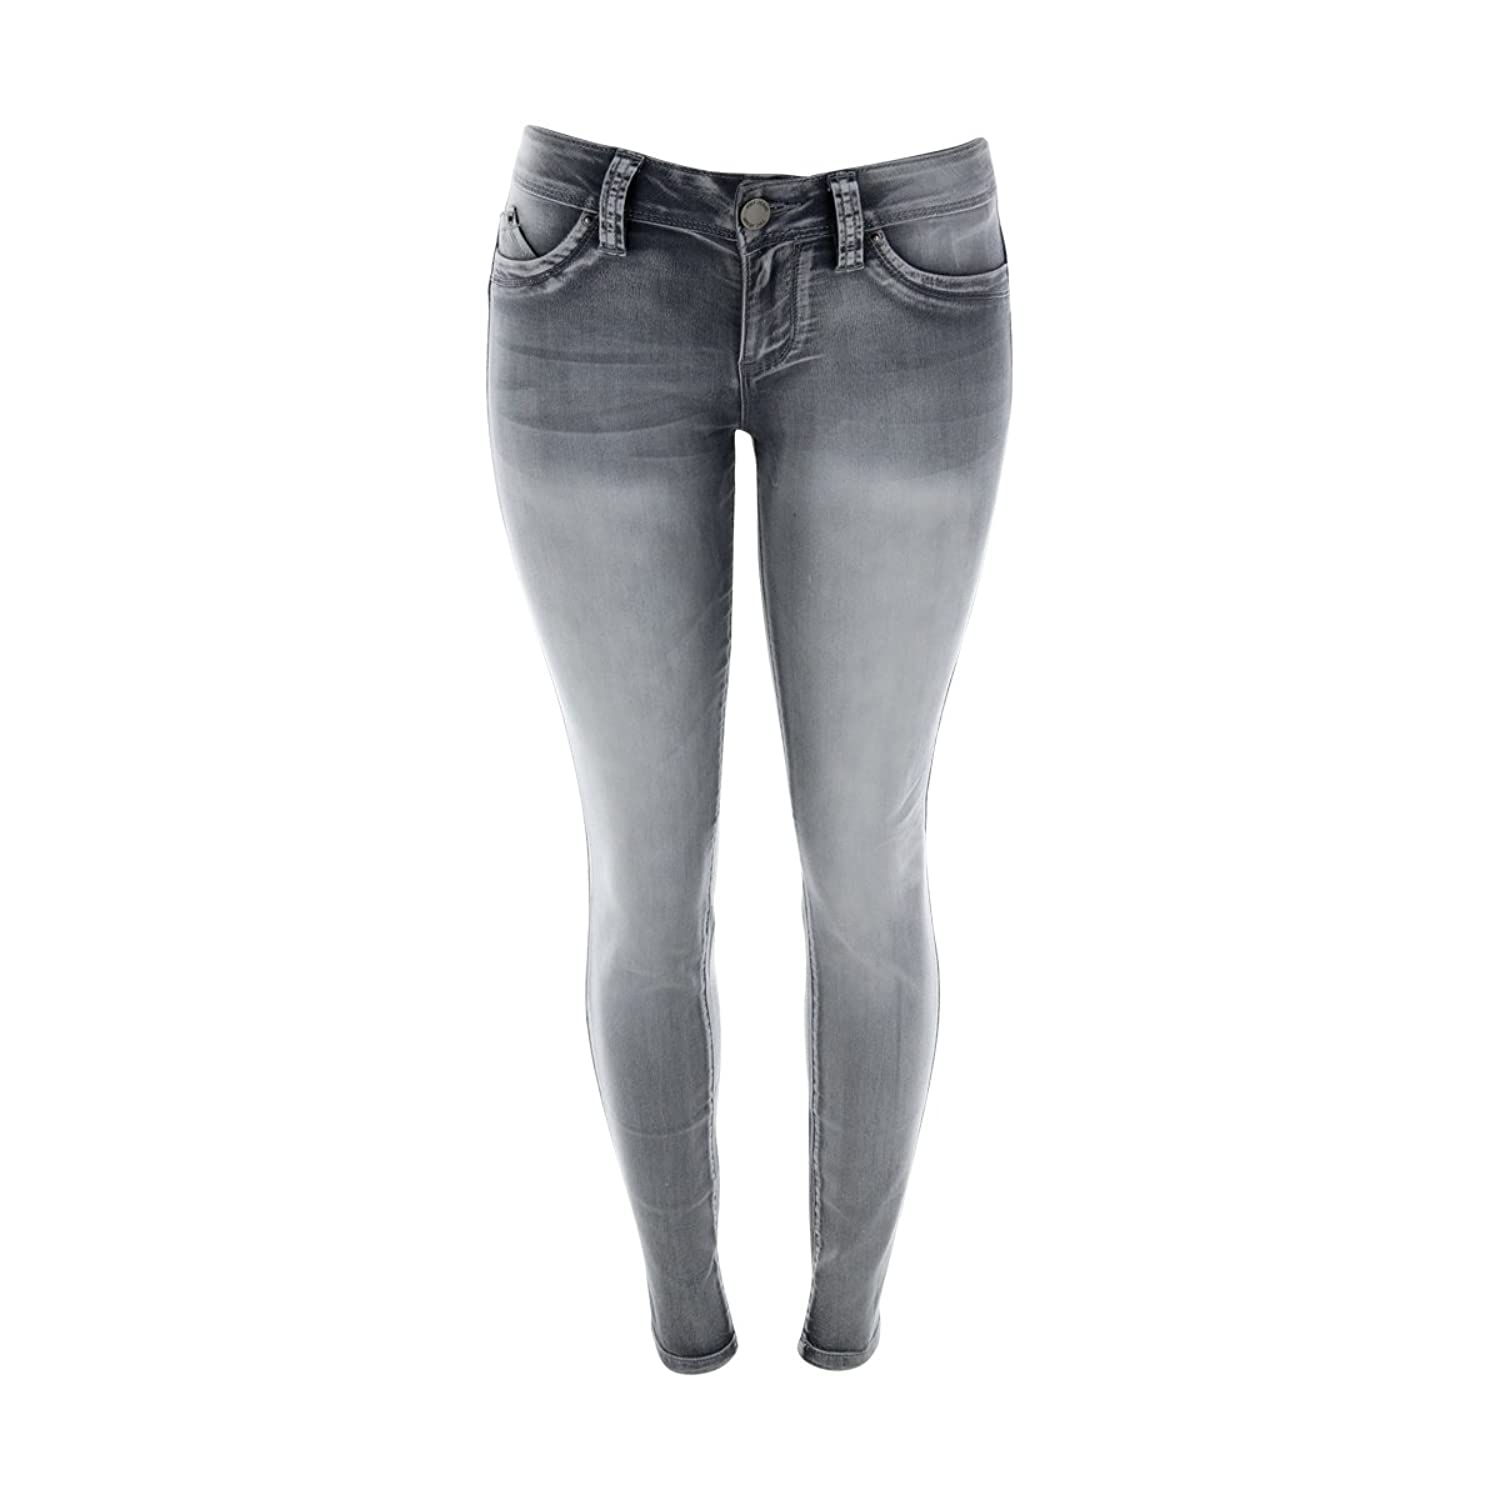 8ae986f6c1d8 well-wreapped Ymi - Women s Wanna Betta Butt 5 Pocket Must Have Basic Jeans